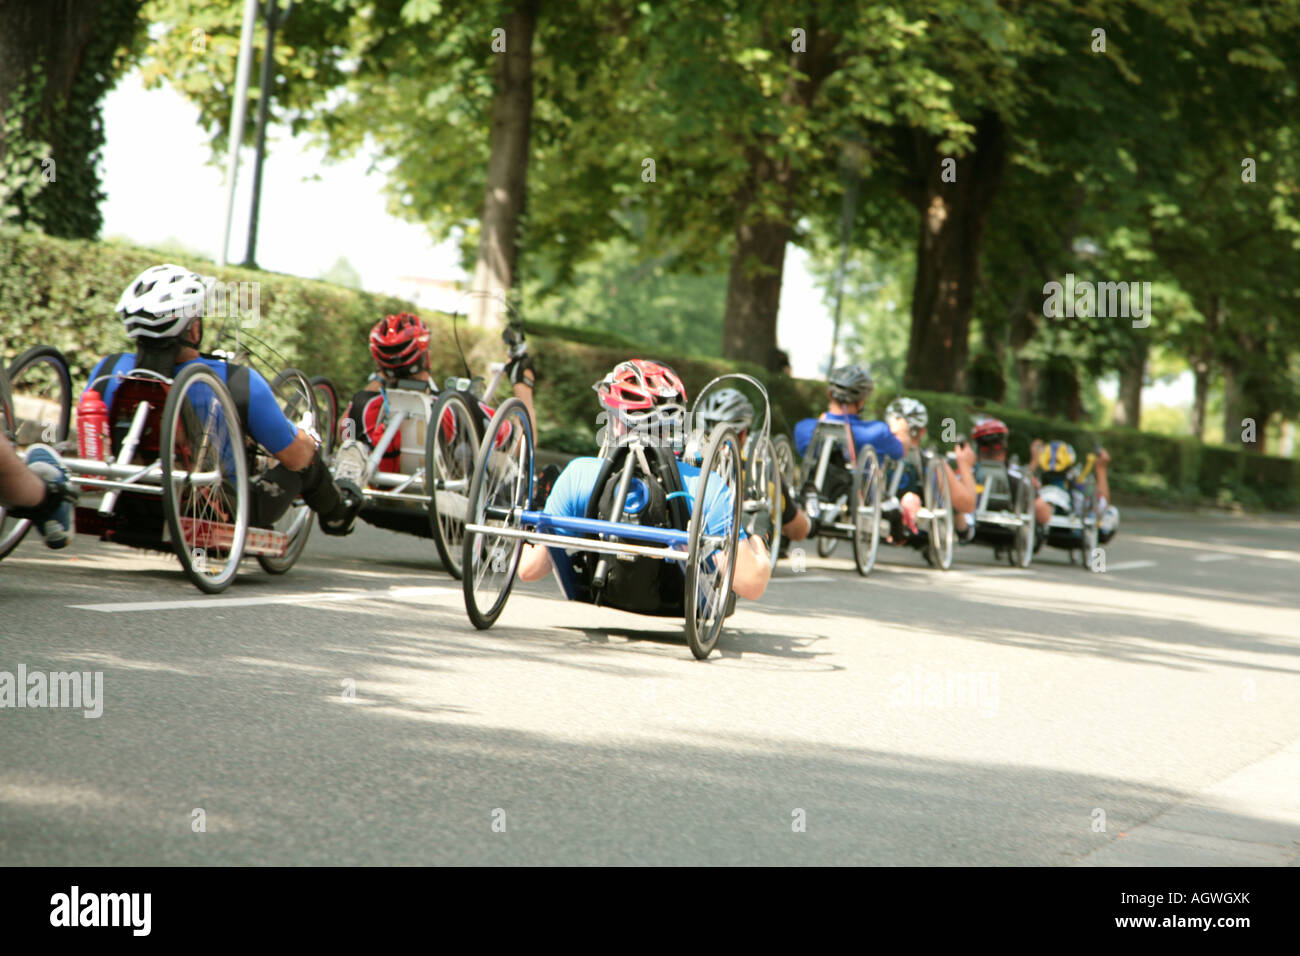 international wheelchair marathon Rollstuhlmarathon Stock Photo